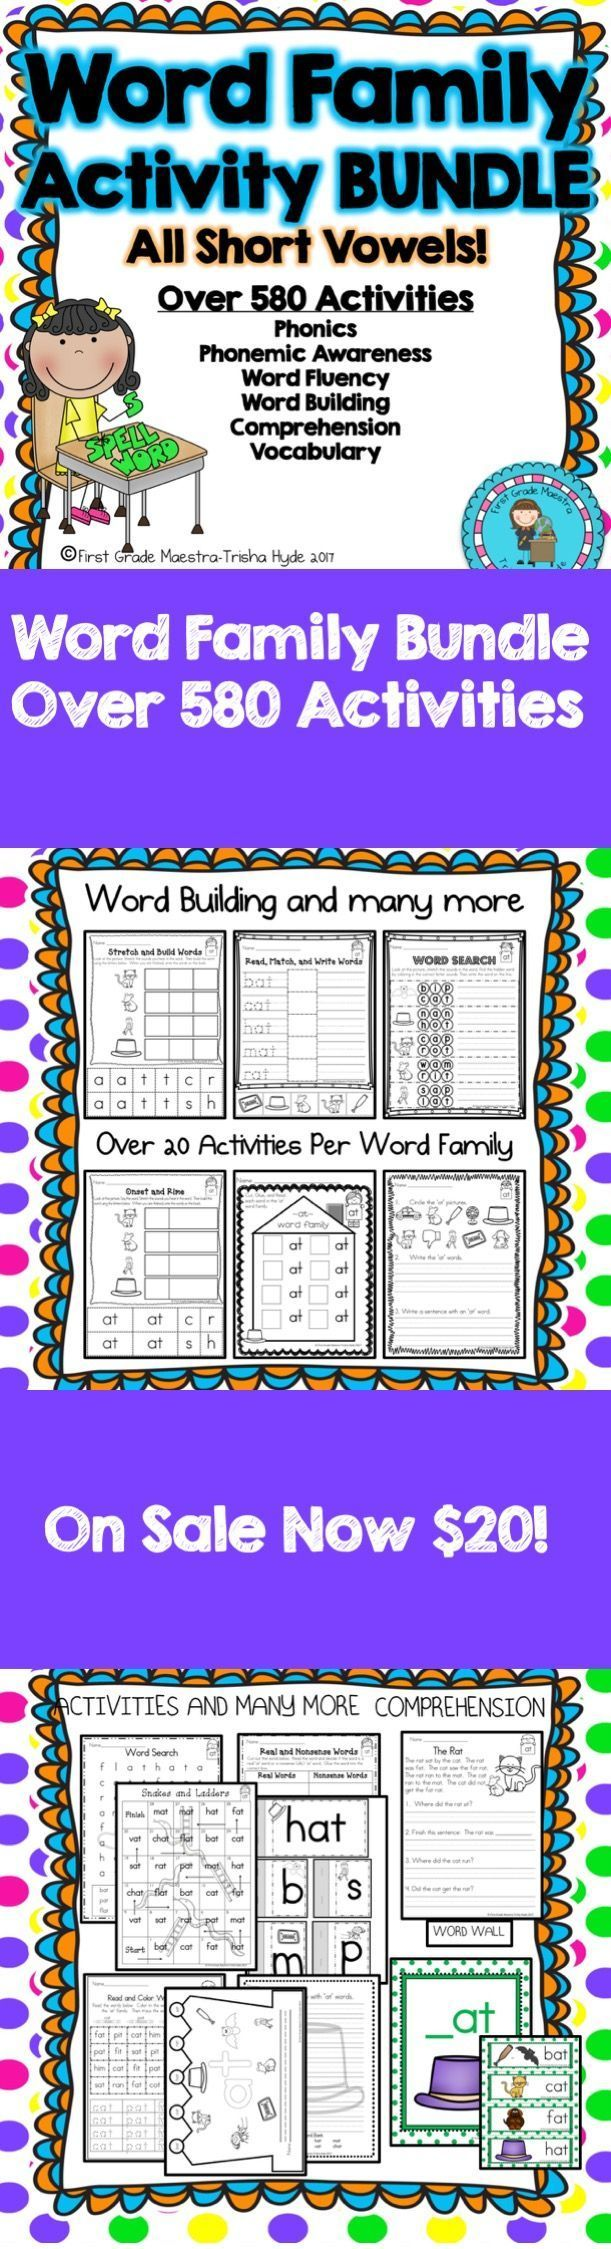 This Word Family Bundle has over 25 different word families.  Short Vowels A, E, I, O, U are included in this bundle.  Word Families ab, ad, ag, am, an, ap, at, eb, ed, eg, en, et, ib, id, ig, in, ip, it, ob, od, go, op, to, up, ud, ug, um, un, up, ut are included.  Click the Visit Button to see all of the resources in this product.